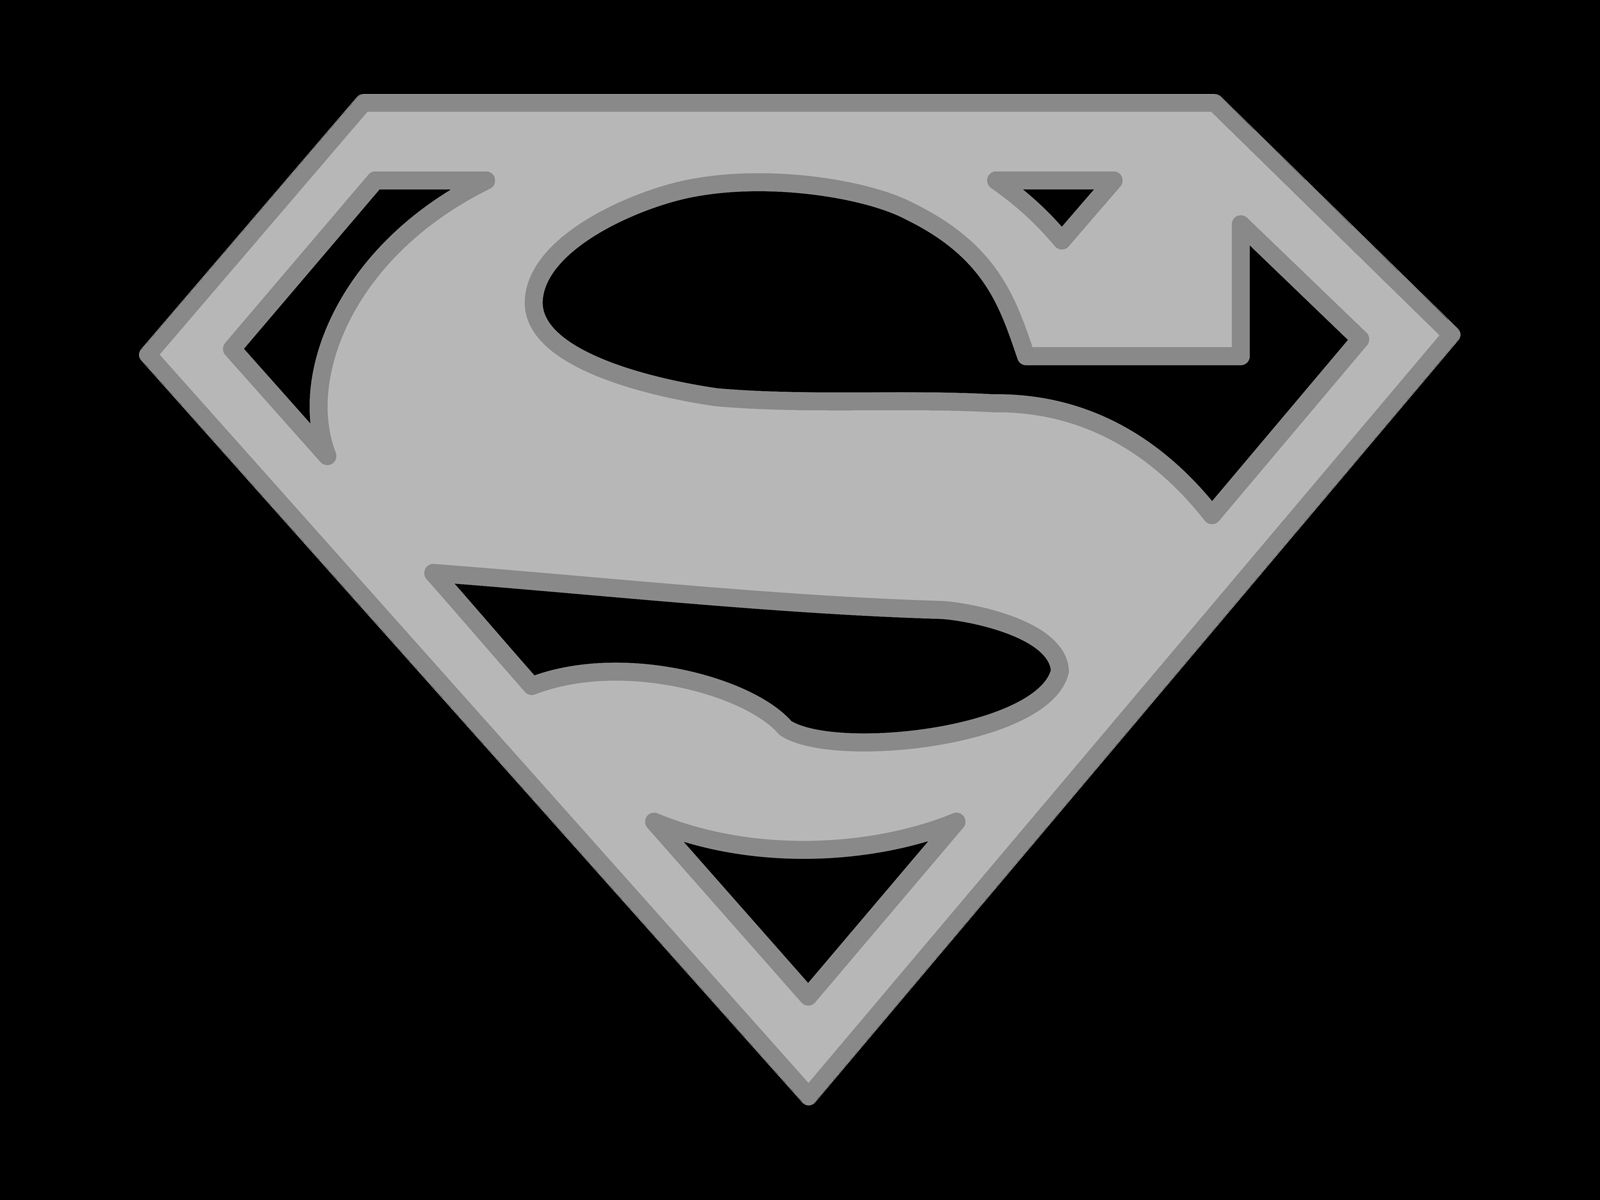 Superman hoodies for couples images amp pictures becuo - Image For Superman Logo Black And White Background Wallpaper